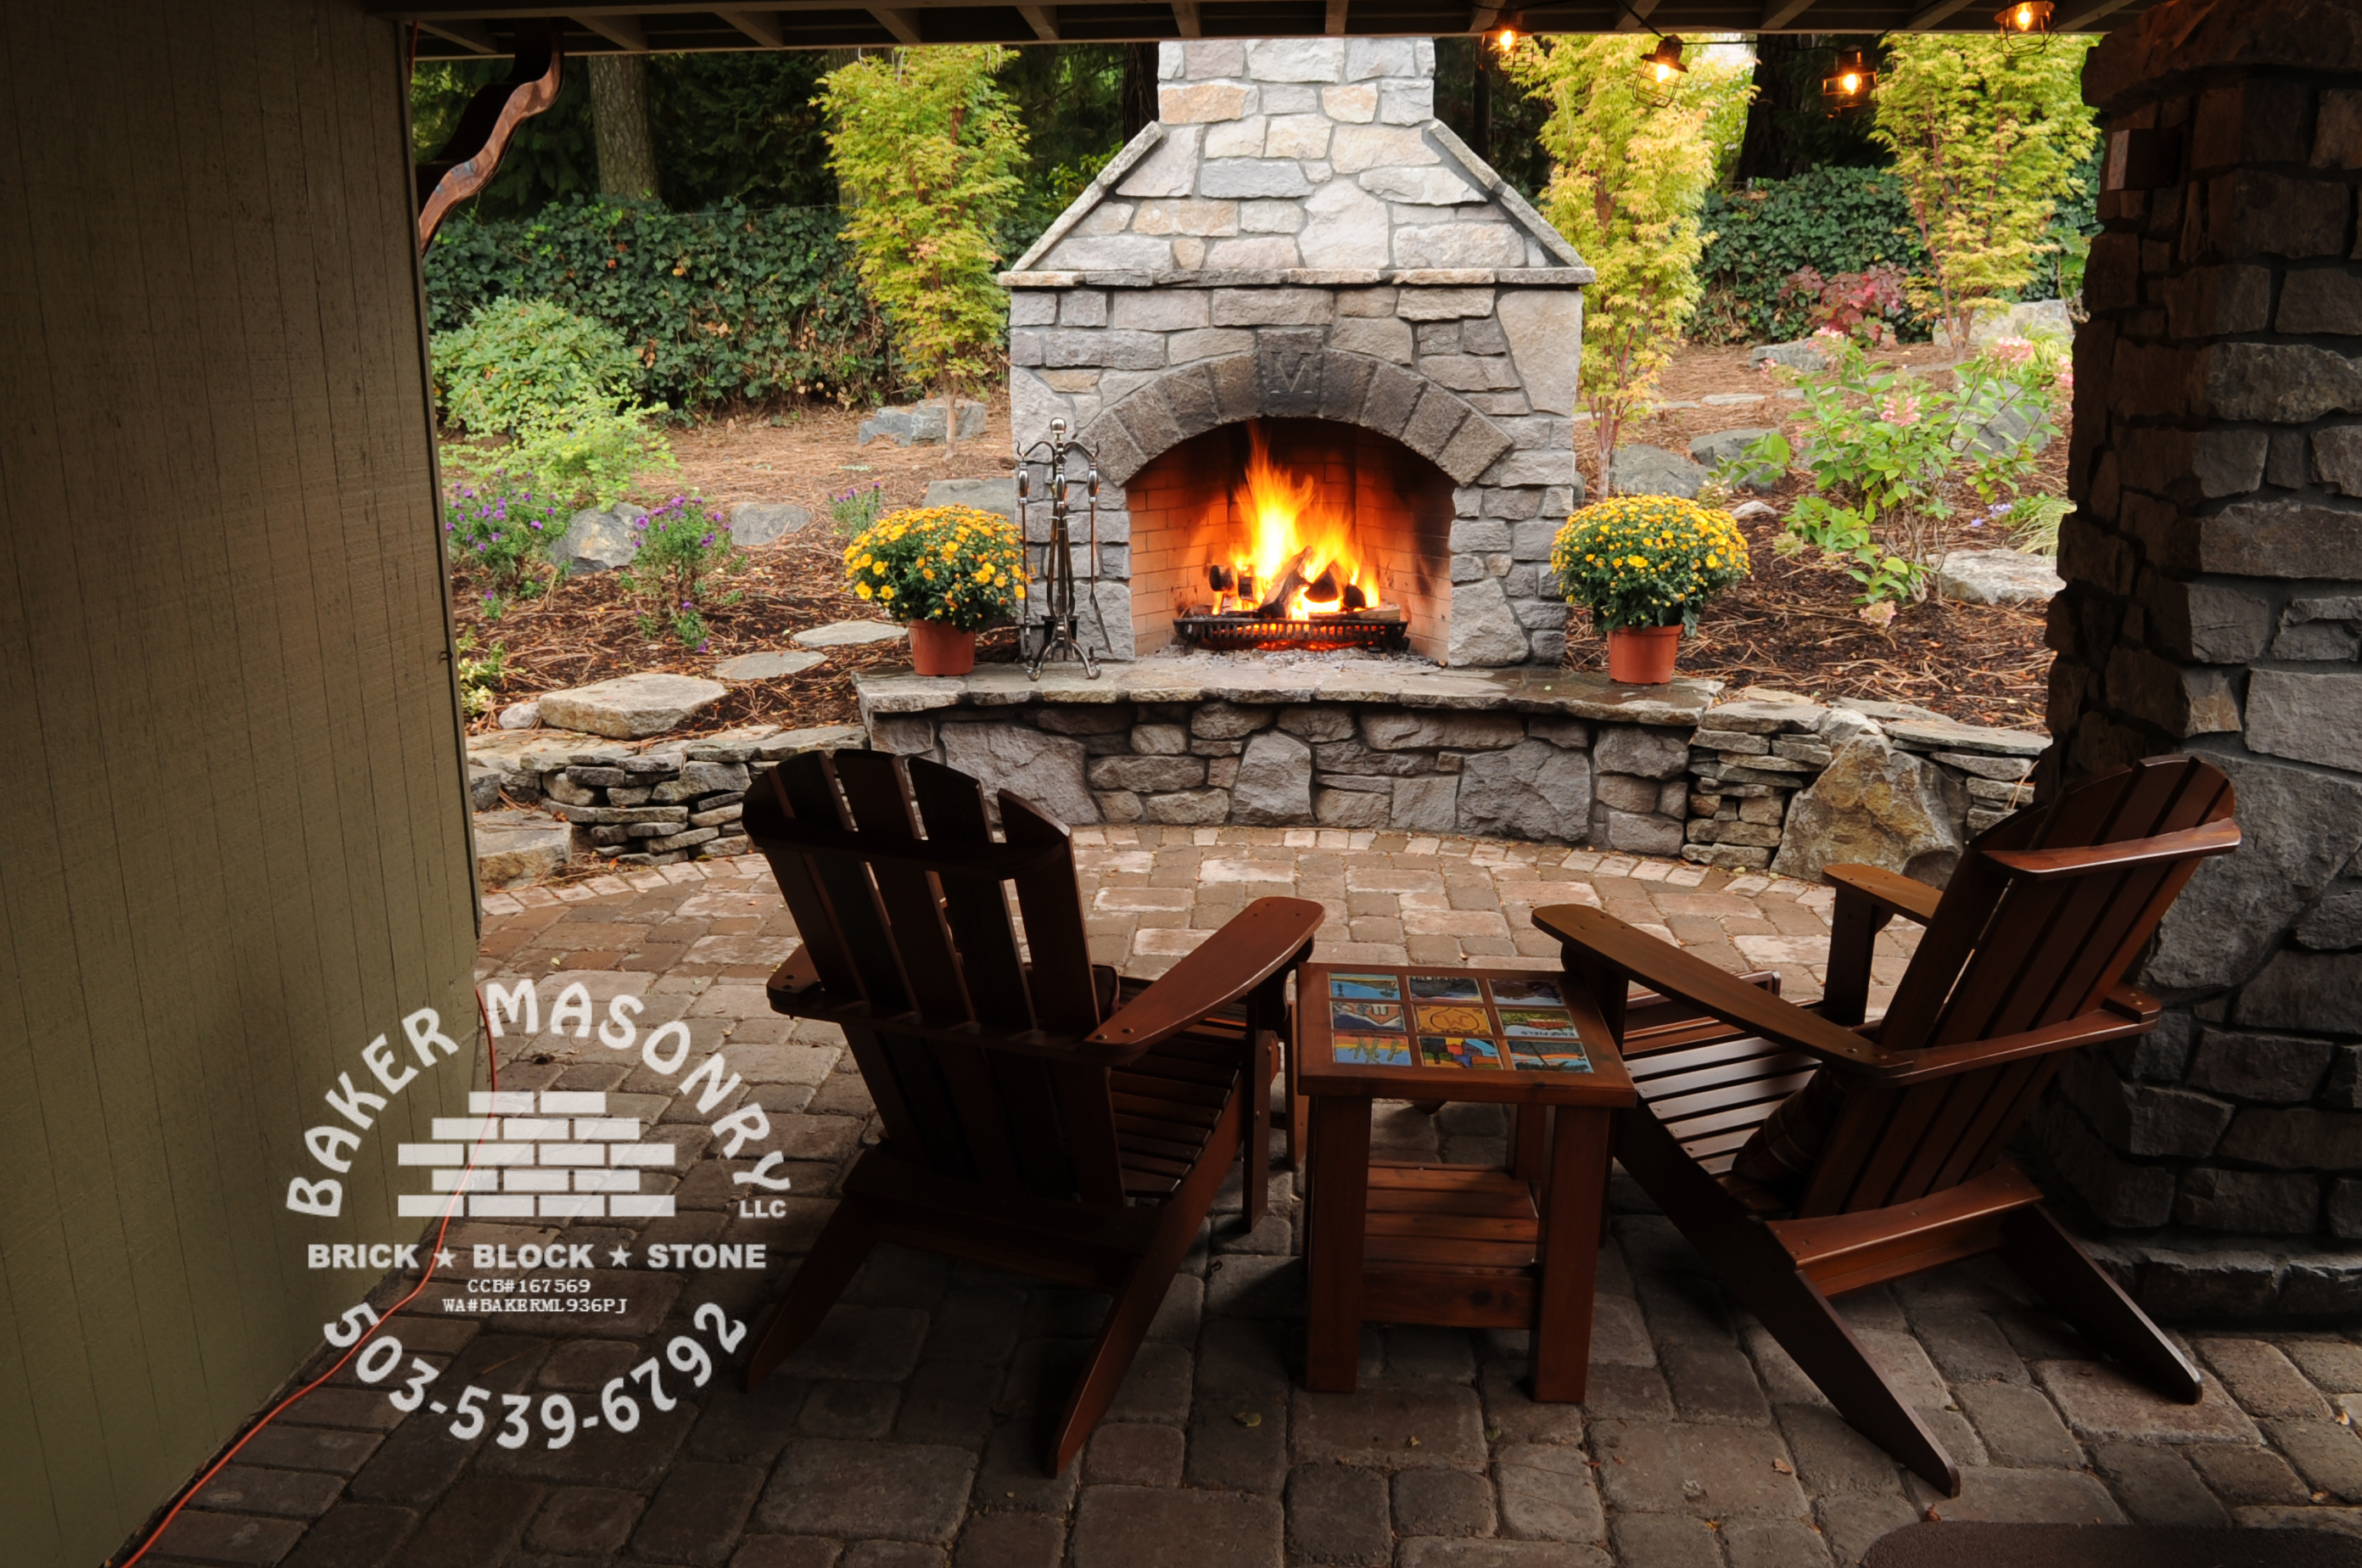 stone fireplaces natural stone fx 34 beautiful stone fireplaces that rock home design ideas. Black Bedroom Furniture Sets. Home Design Ideas